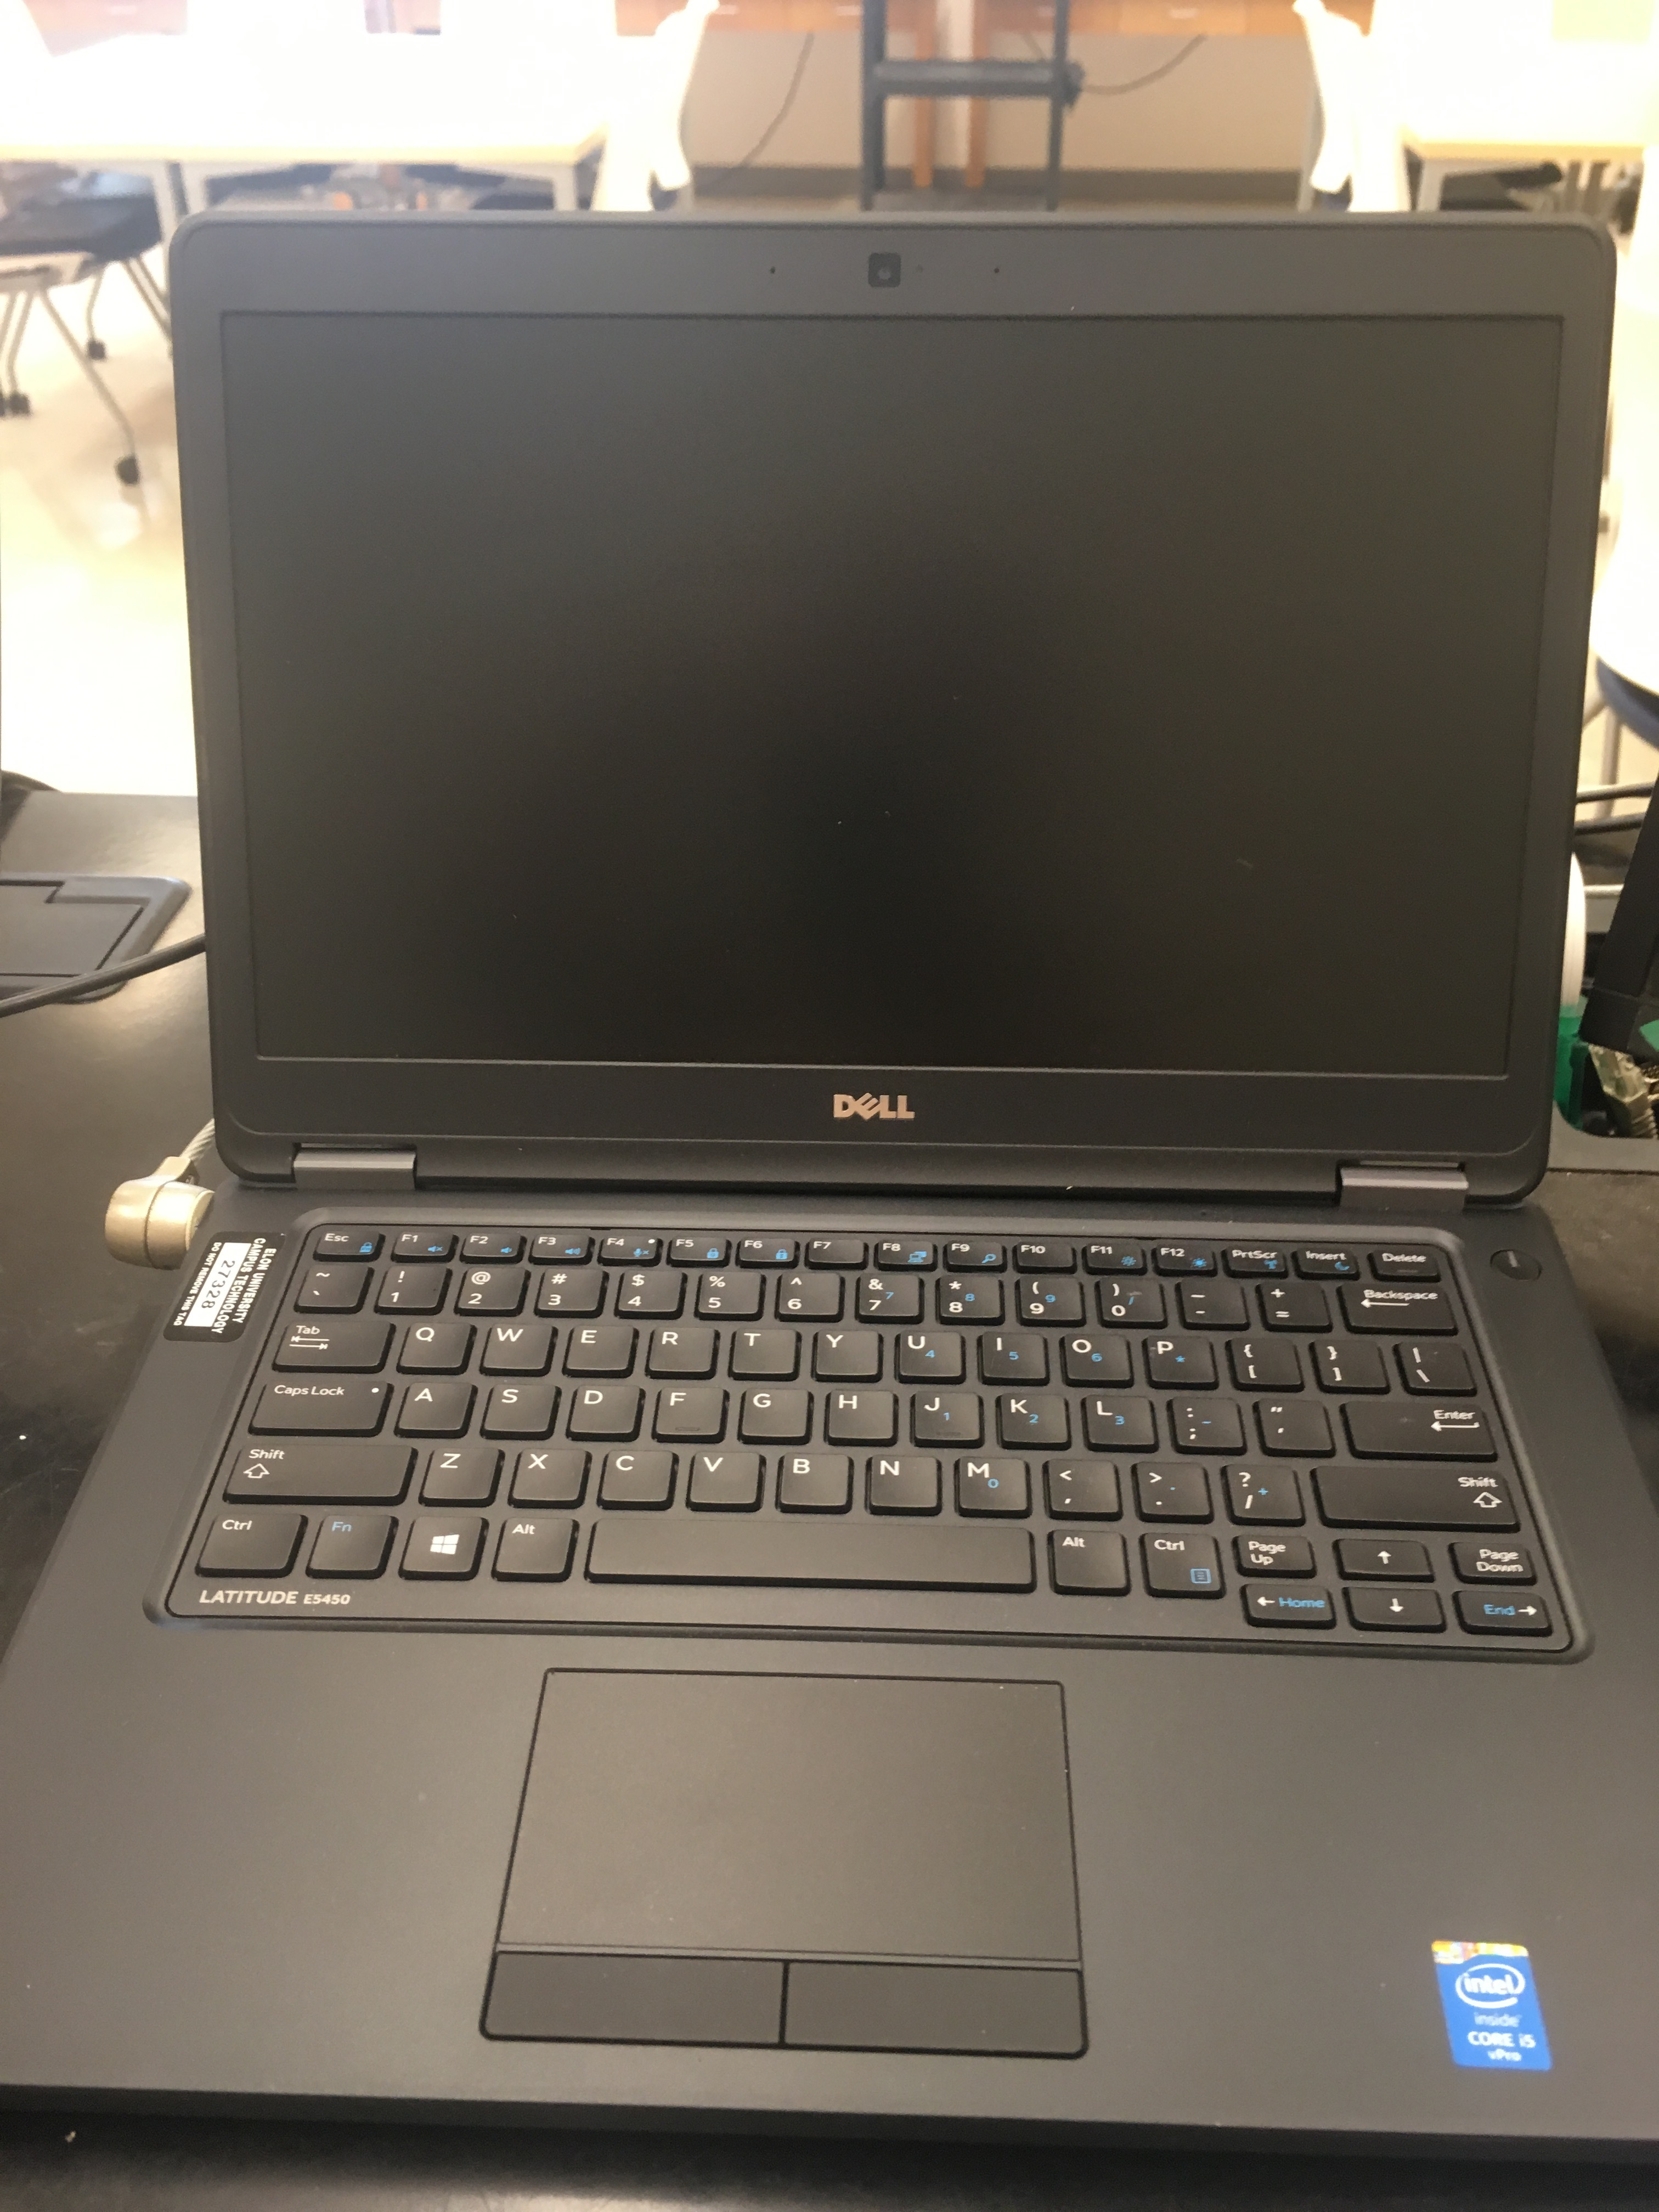 Photo of the laptop available in the space